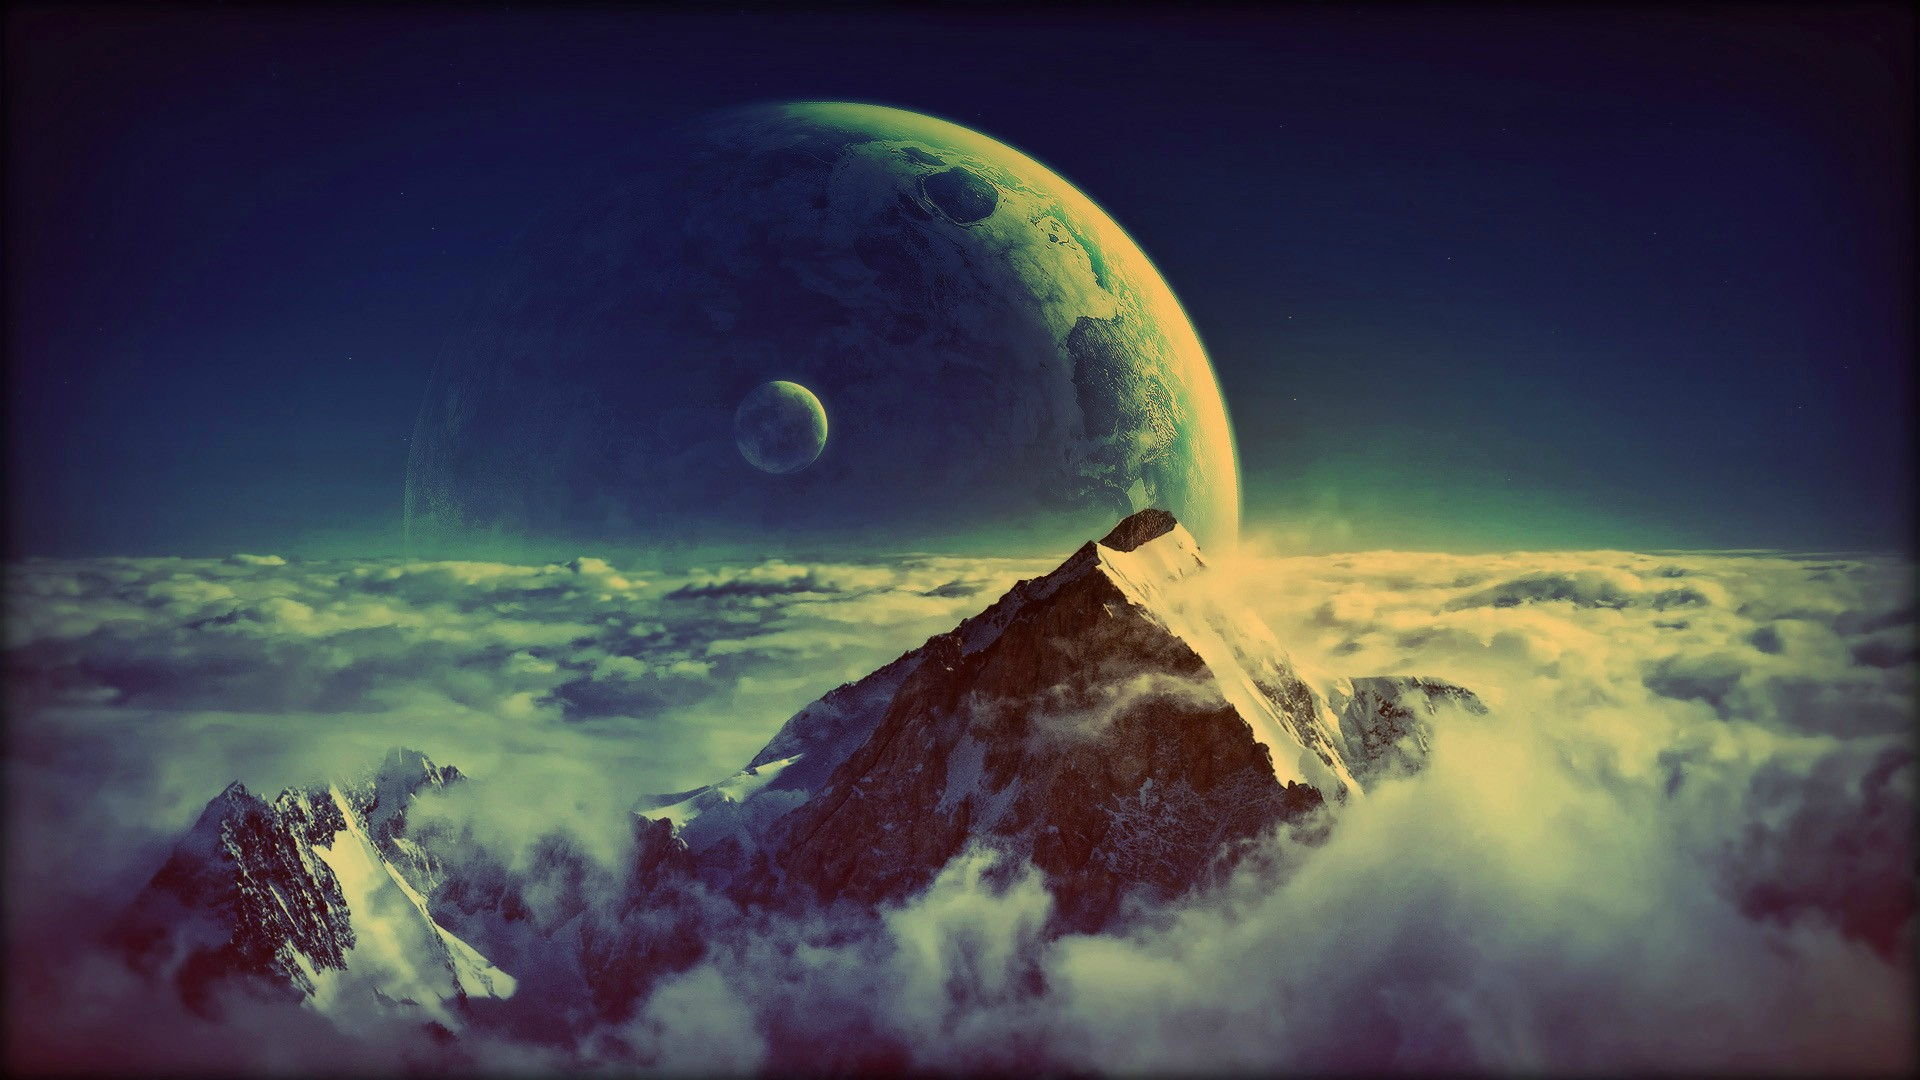 Space fantasy wallpaper set 86 awesome wallpapers for Photo ecran w10